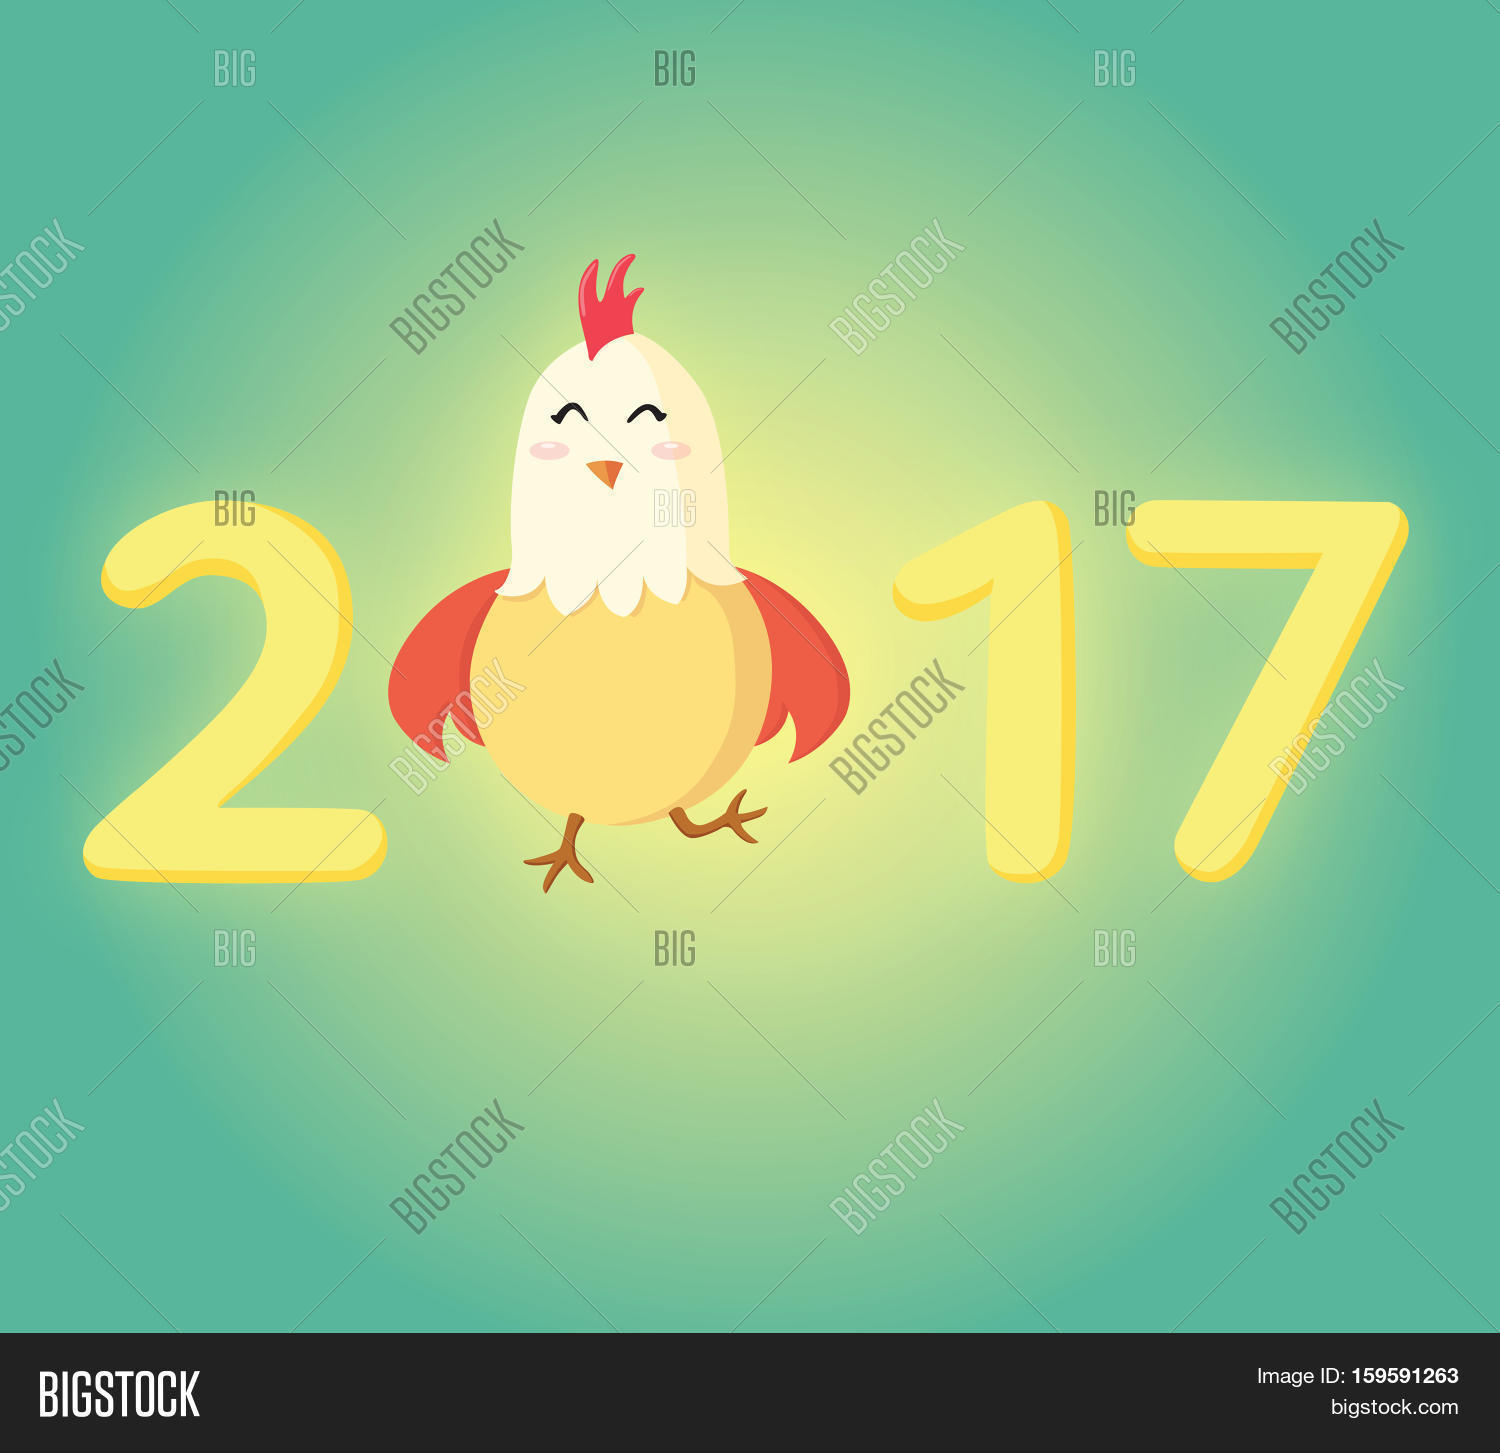 Happy Rooster 2017 Image Photo Free Trial Bigstock